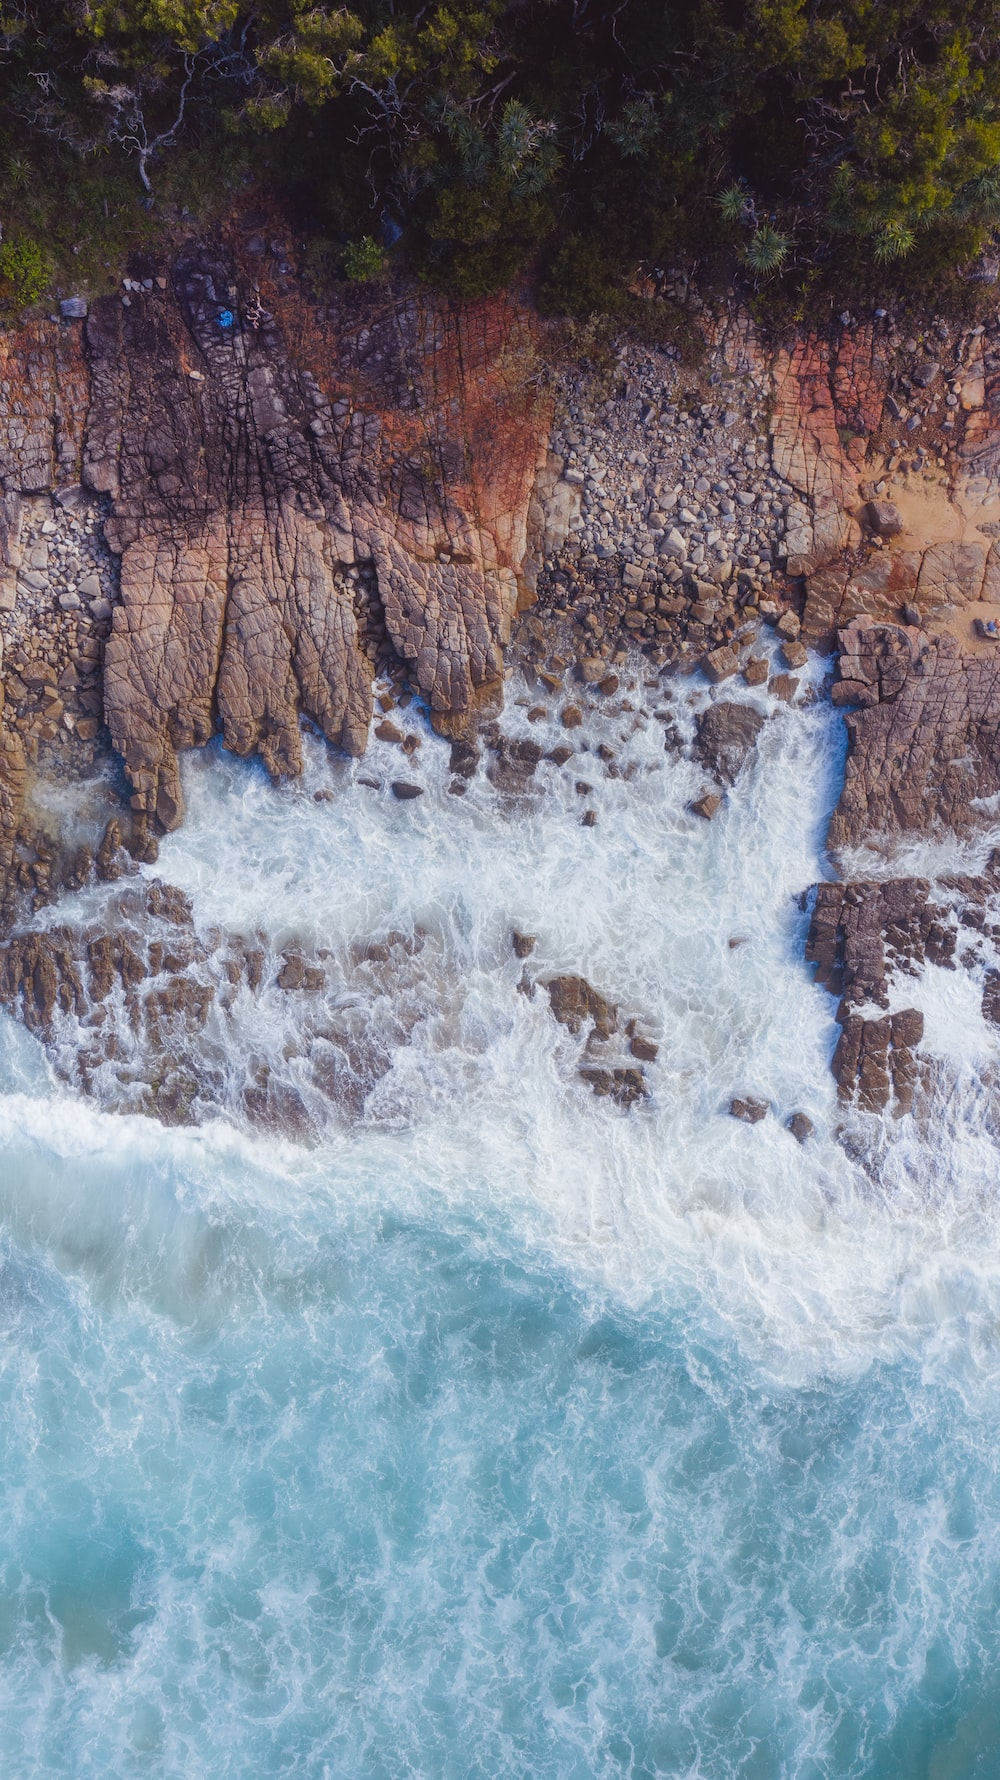 water falls by the cliff